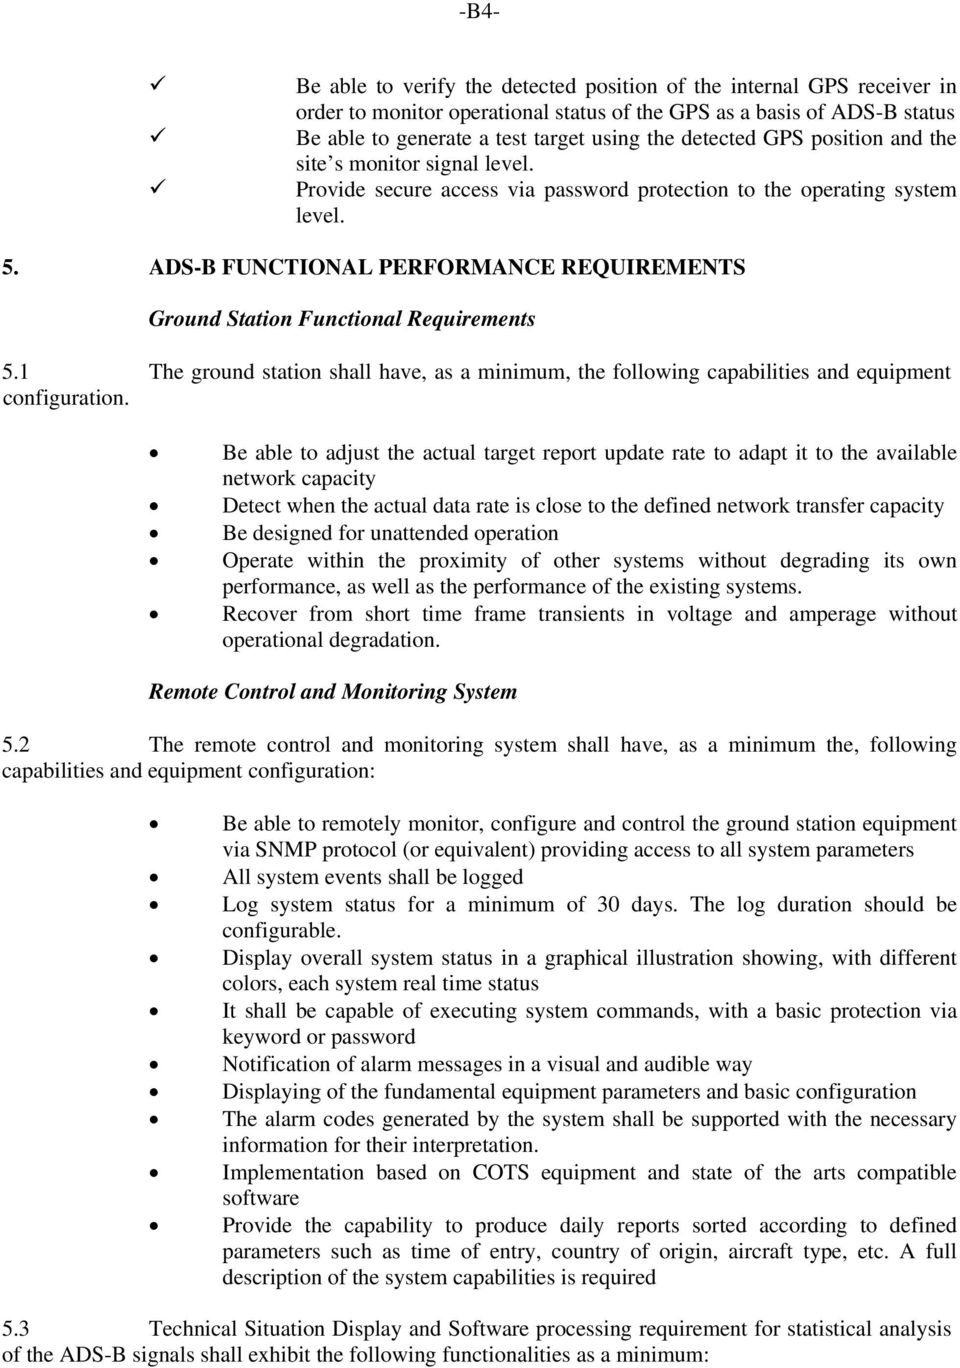 ADS-B FUNCTIONAL PERFORMANCE REQUIREMENTS Ground Station Functional Requirements 5.1 The ground station shall have, as a minimum, the following capabilities and equipment configuration.